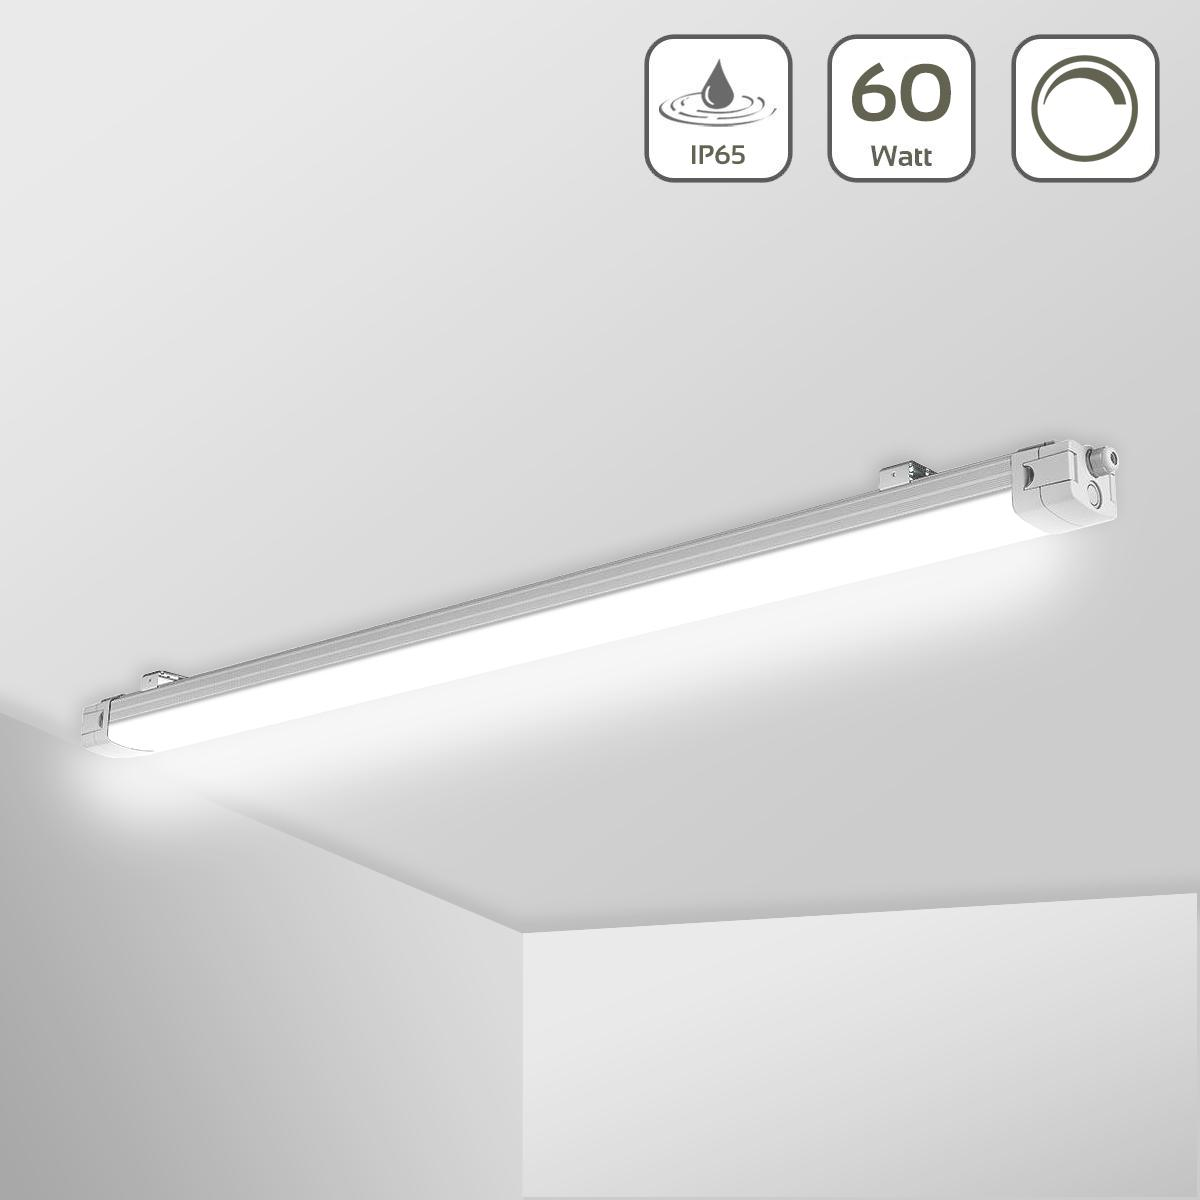 LED Feuchtraumleuchte PRO+ 60W 4000K 1-10V dimmbar